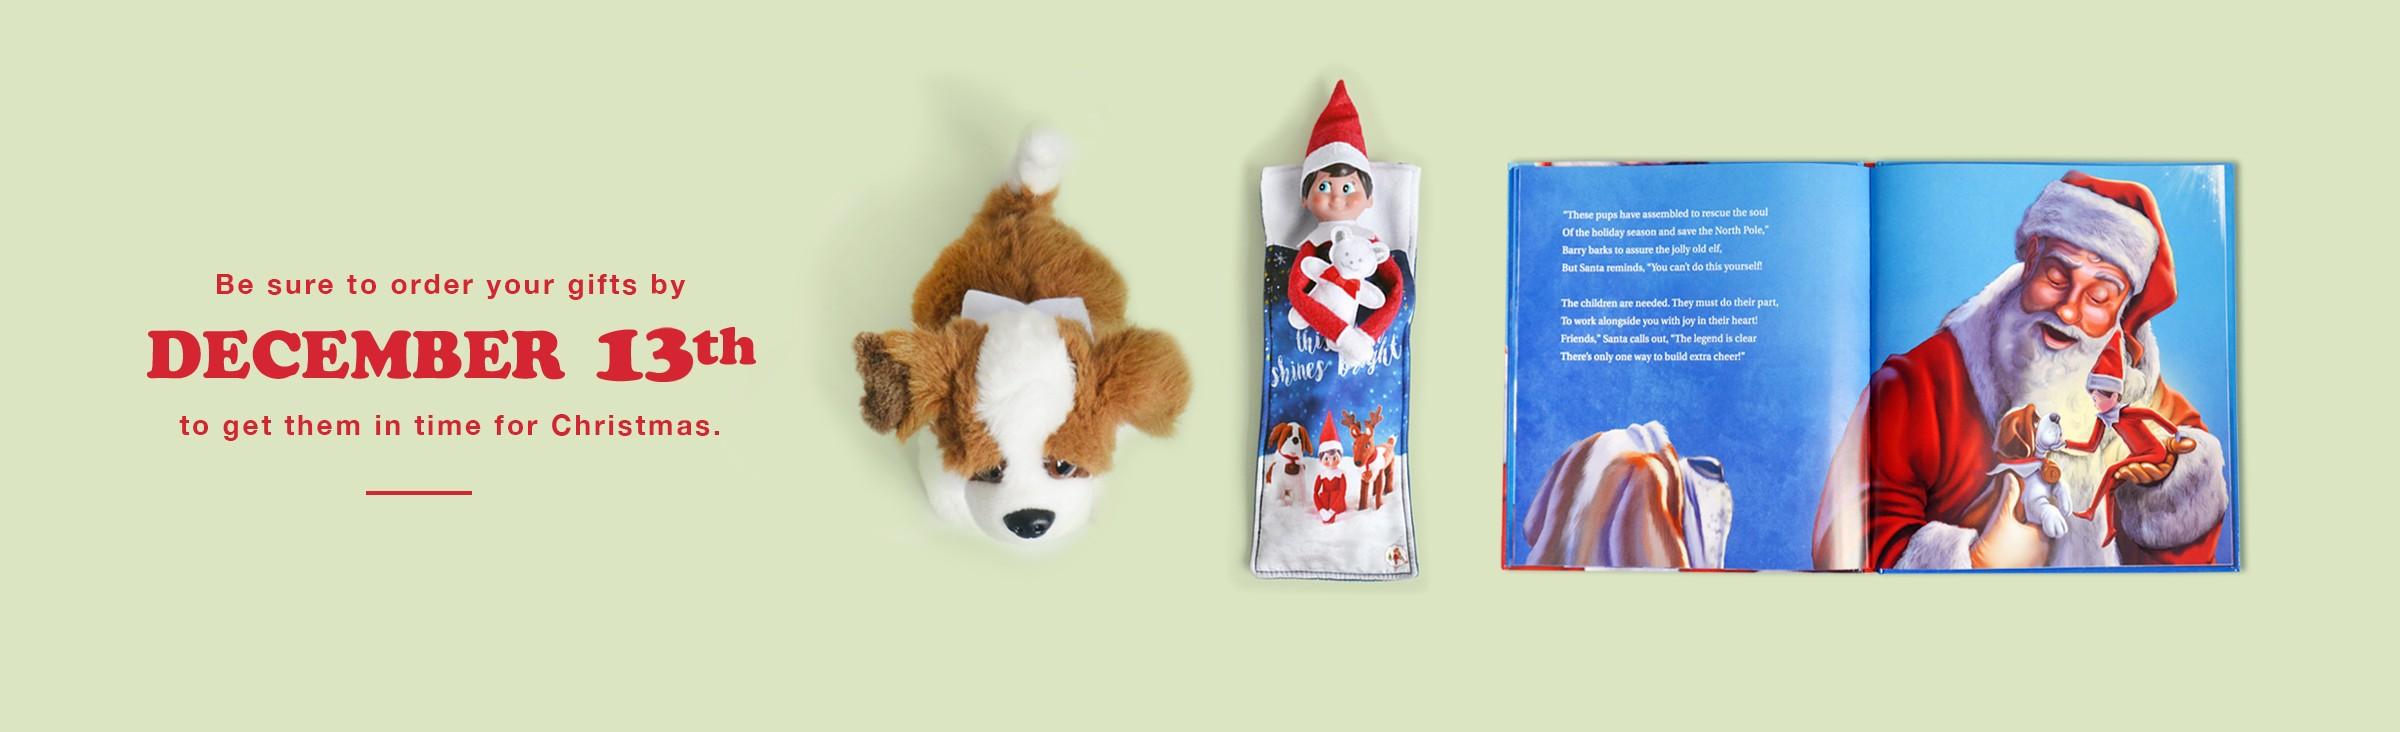 Elf on the Shelf and Plush Dog. Be sure to order your gifts by December 13th to get them in time for Christmas.